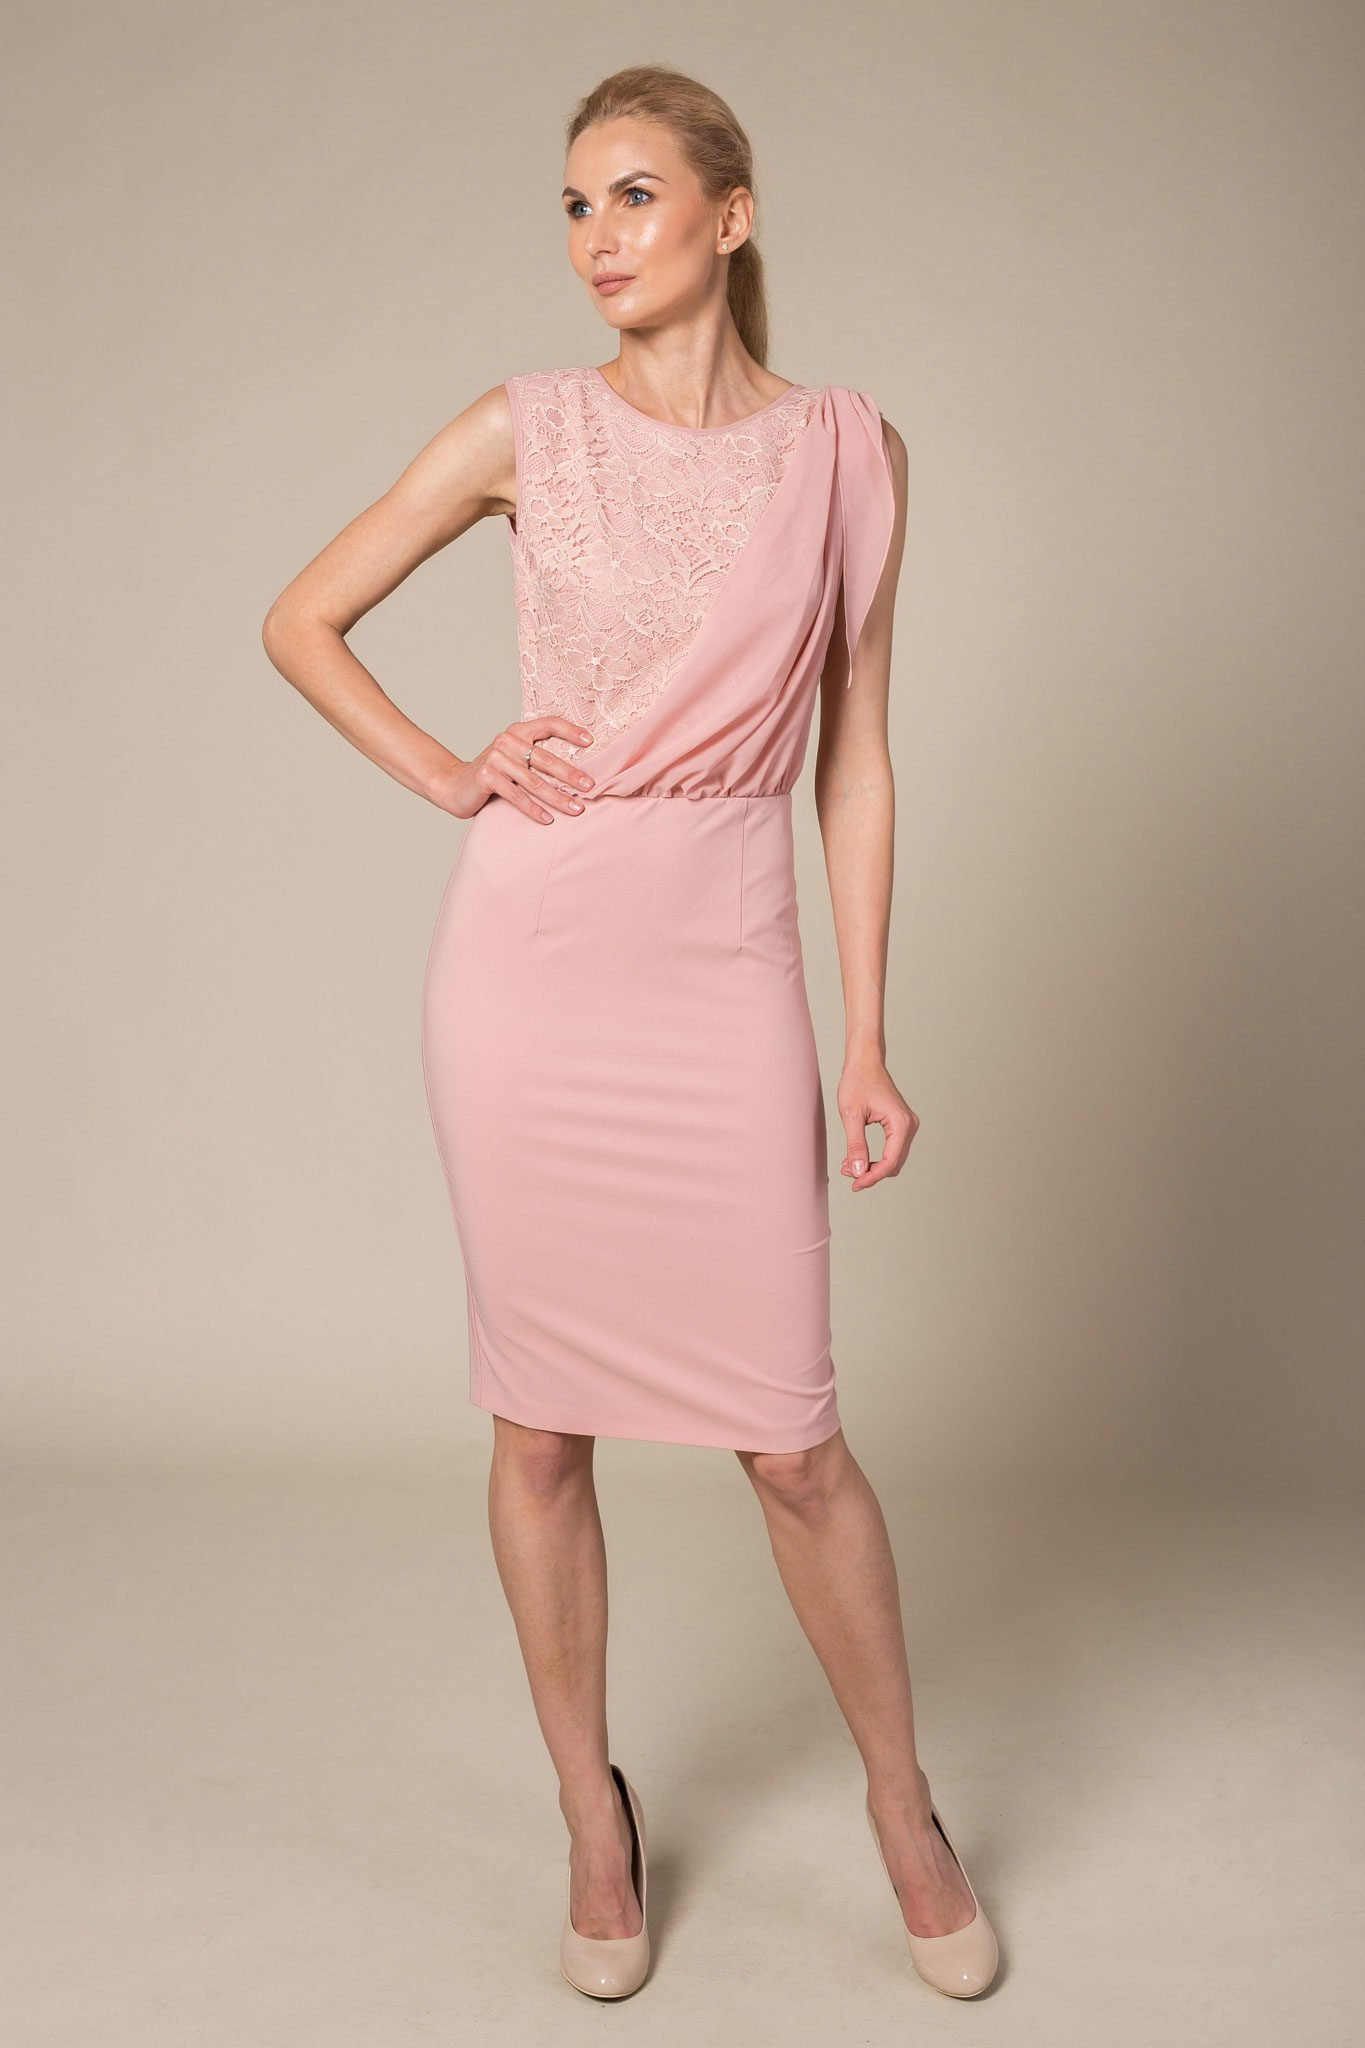 Blush evening dress with one shoulder overlay detail